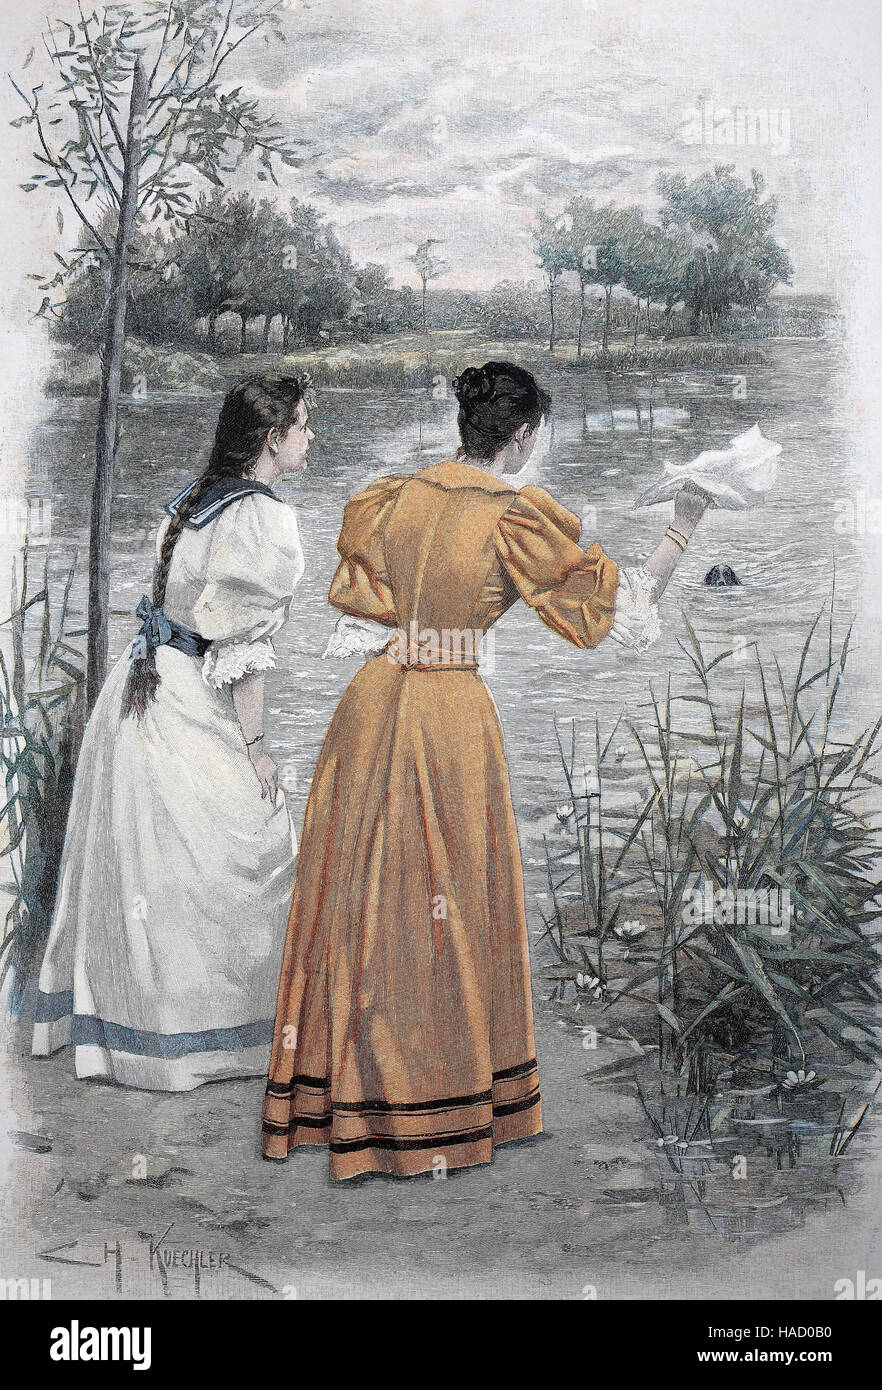 Two women are waiting for their dog swimming in the lake, illustration published in 1880 - Stock Image